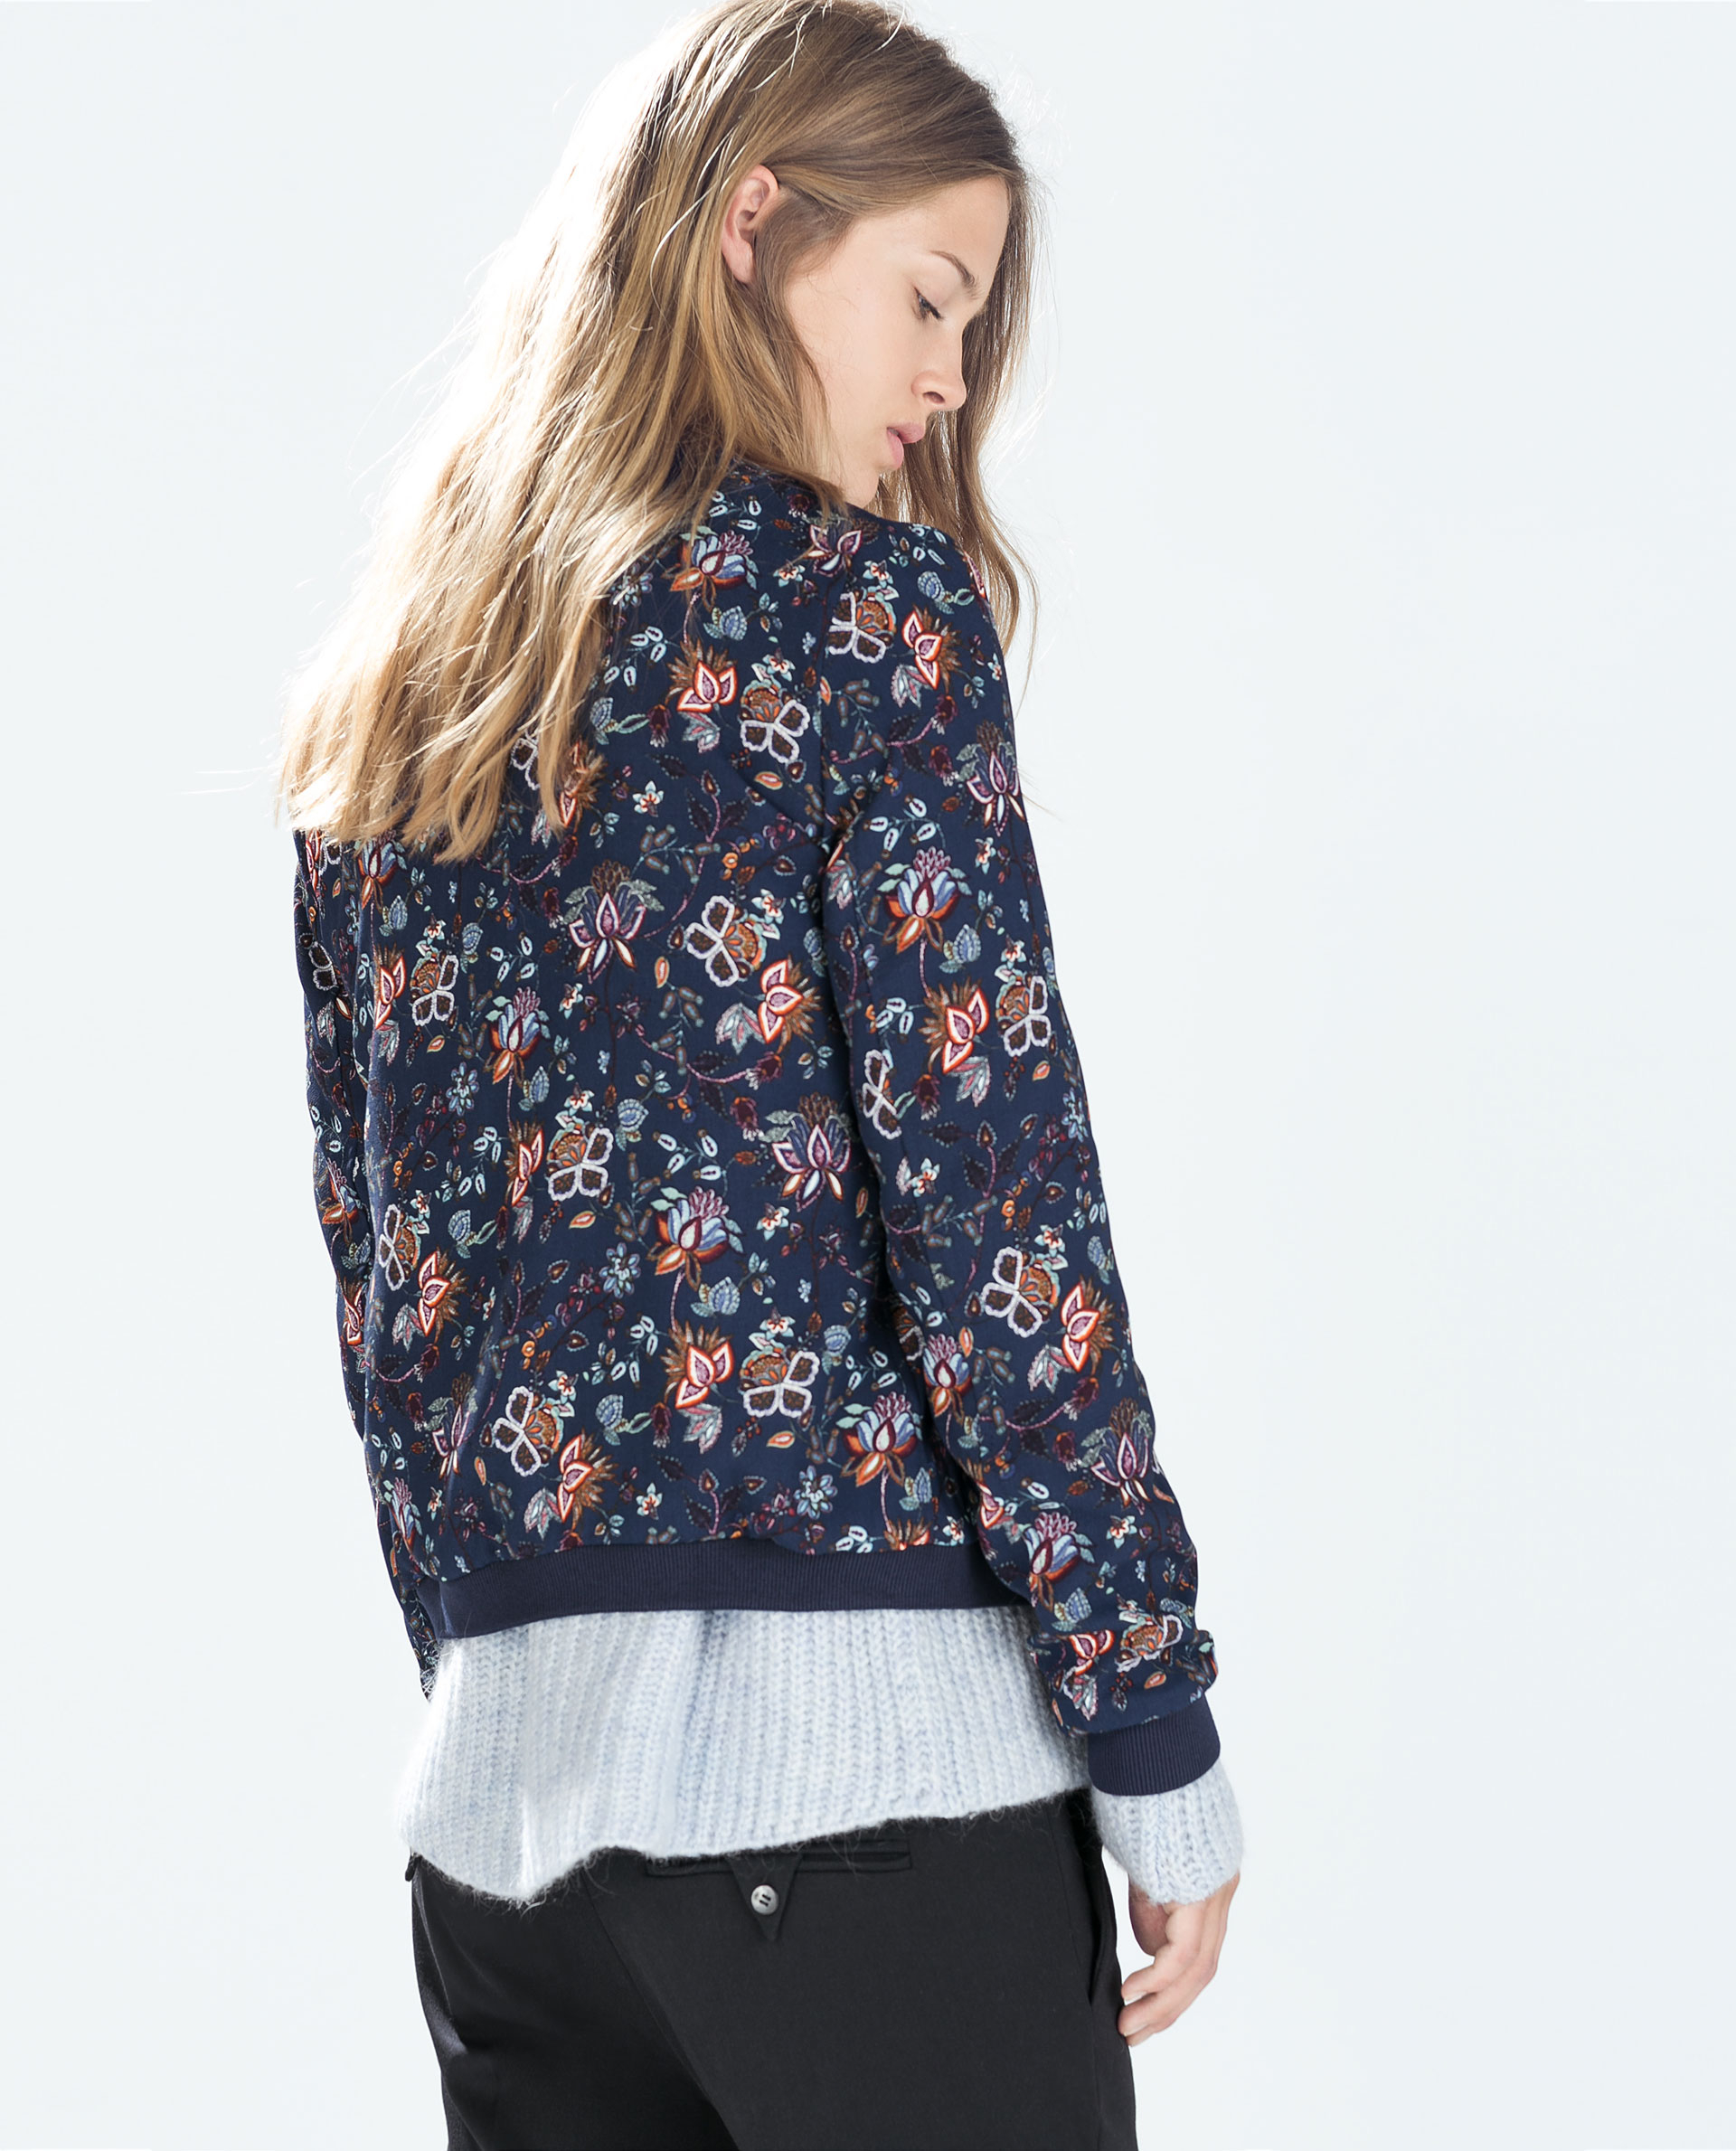 Cover up this season with our new Berrie floral bomber jacket! Available in UK sizes